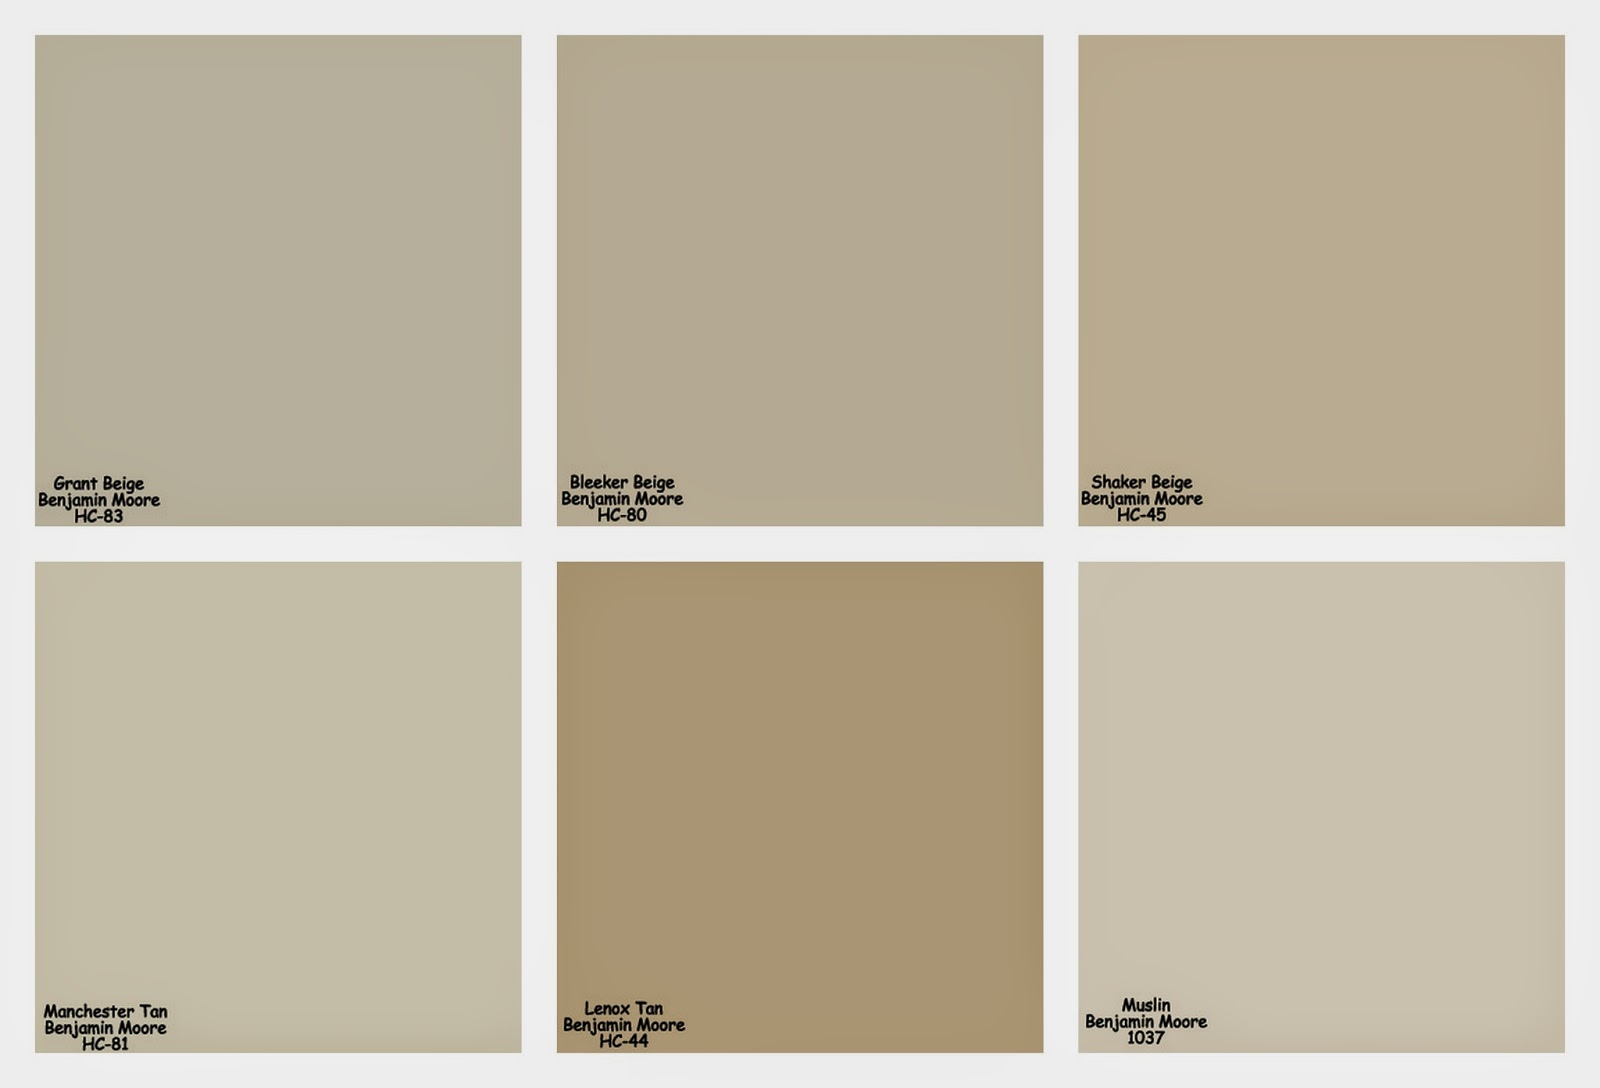 Here Are All The Shades Of Beige I Considered Putting Them Side By Like This Helped Me Compare Intensity And Tone For Example It Was Pretty Easy To